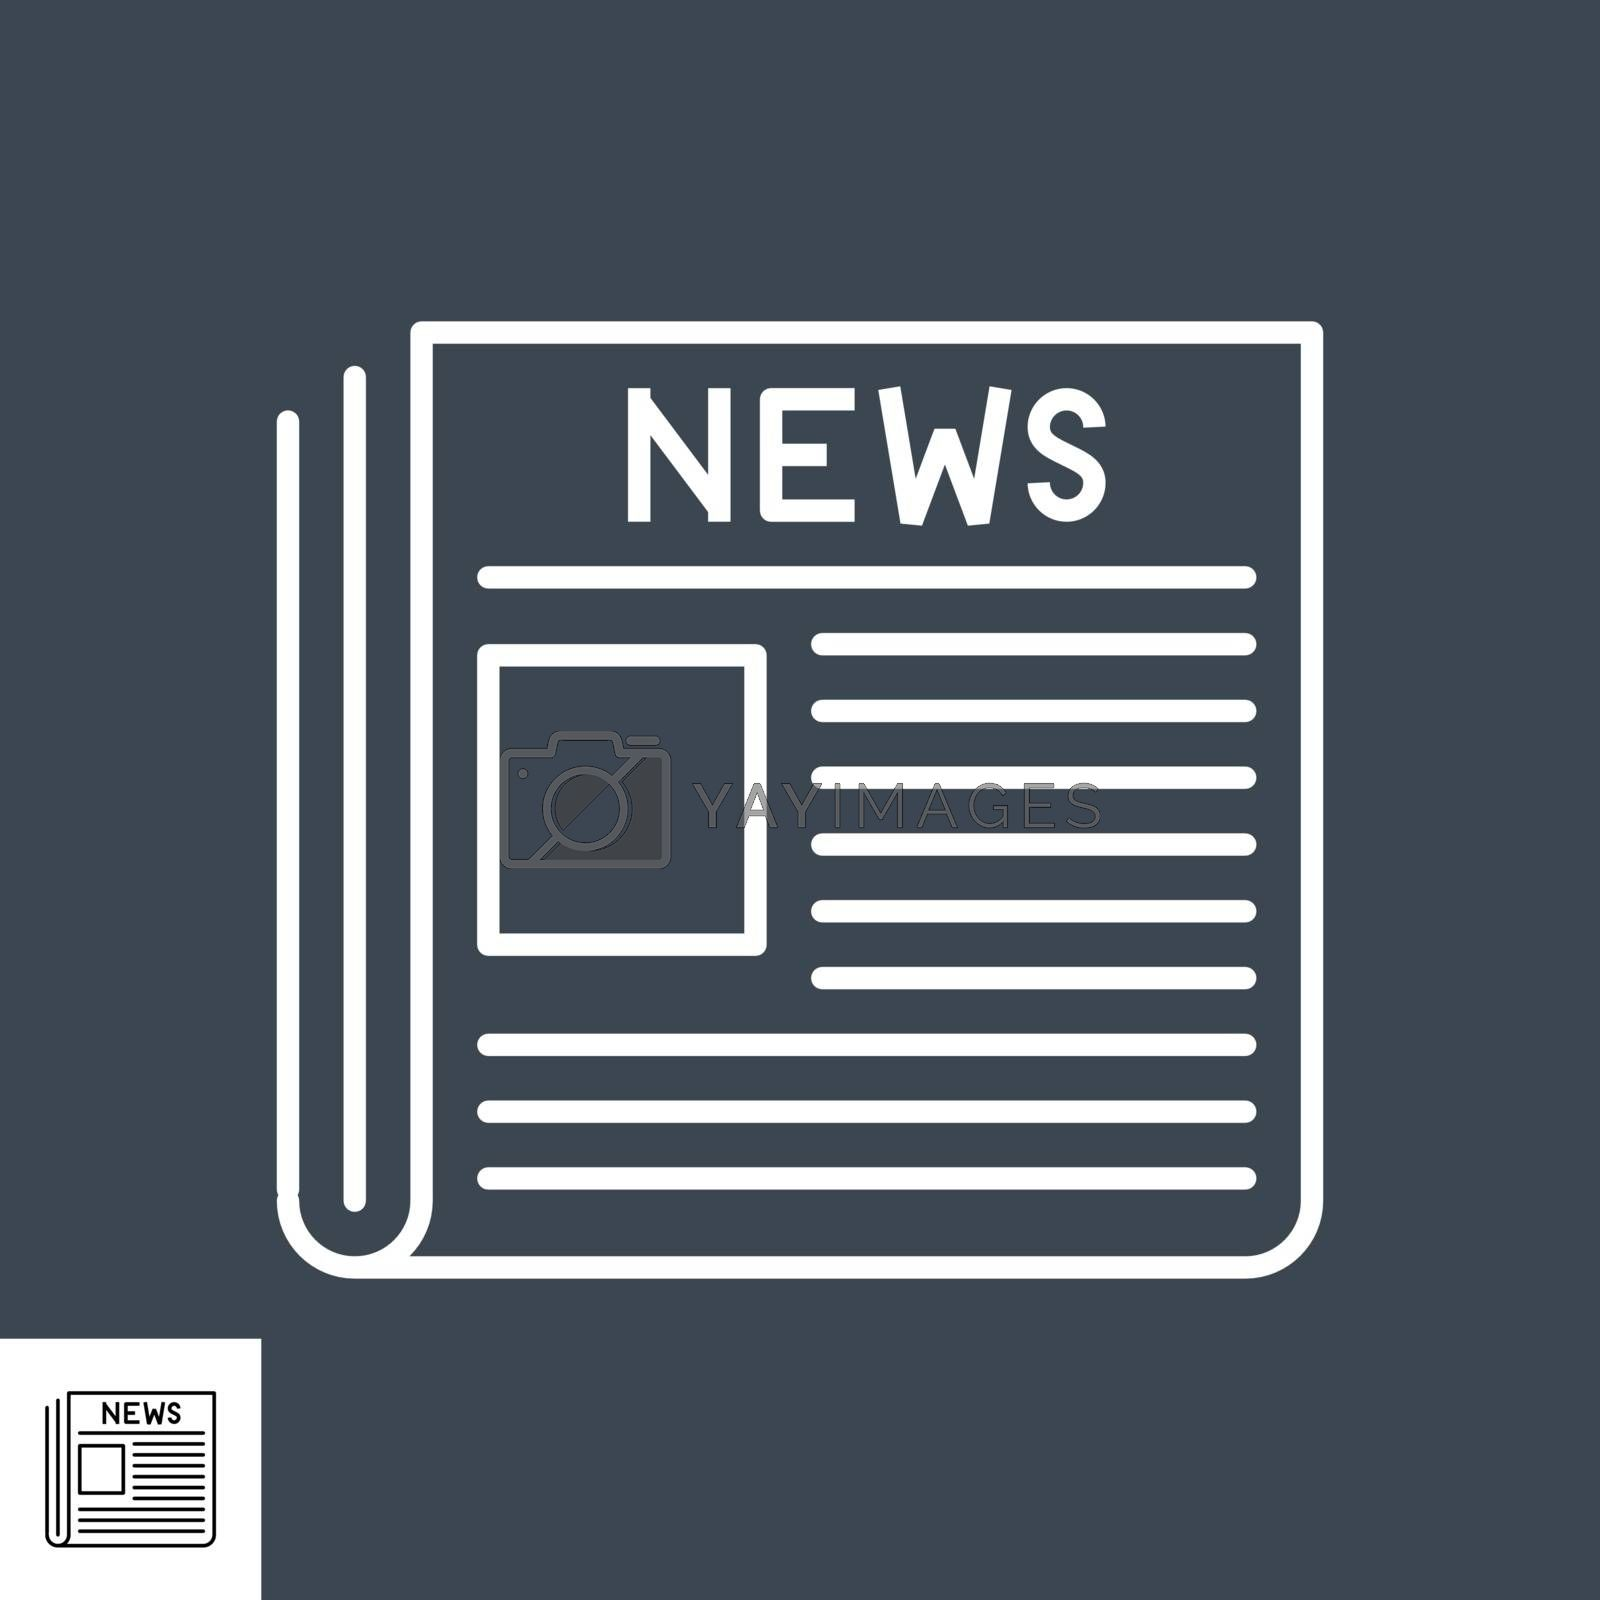 Newspaper Thin Line Vector Icon. Flat icon isolated on the black background. Editable EPS file. Vector illustration.